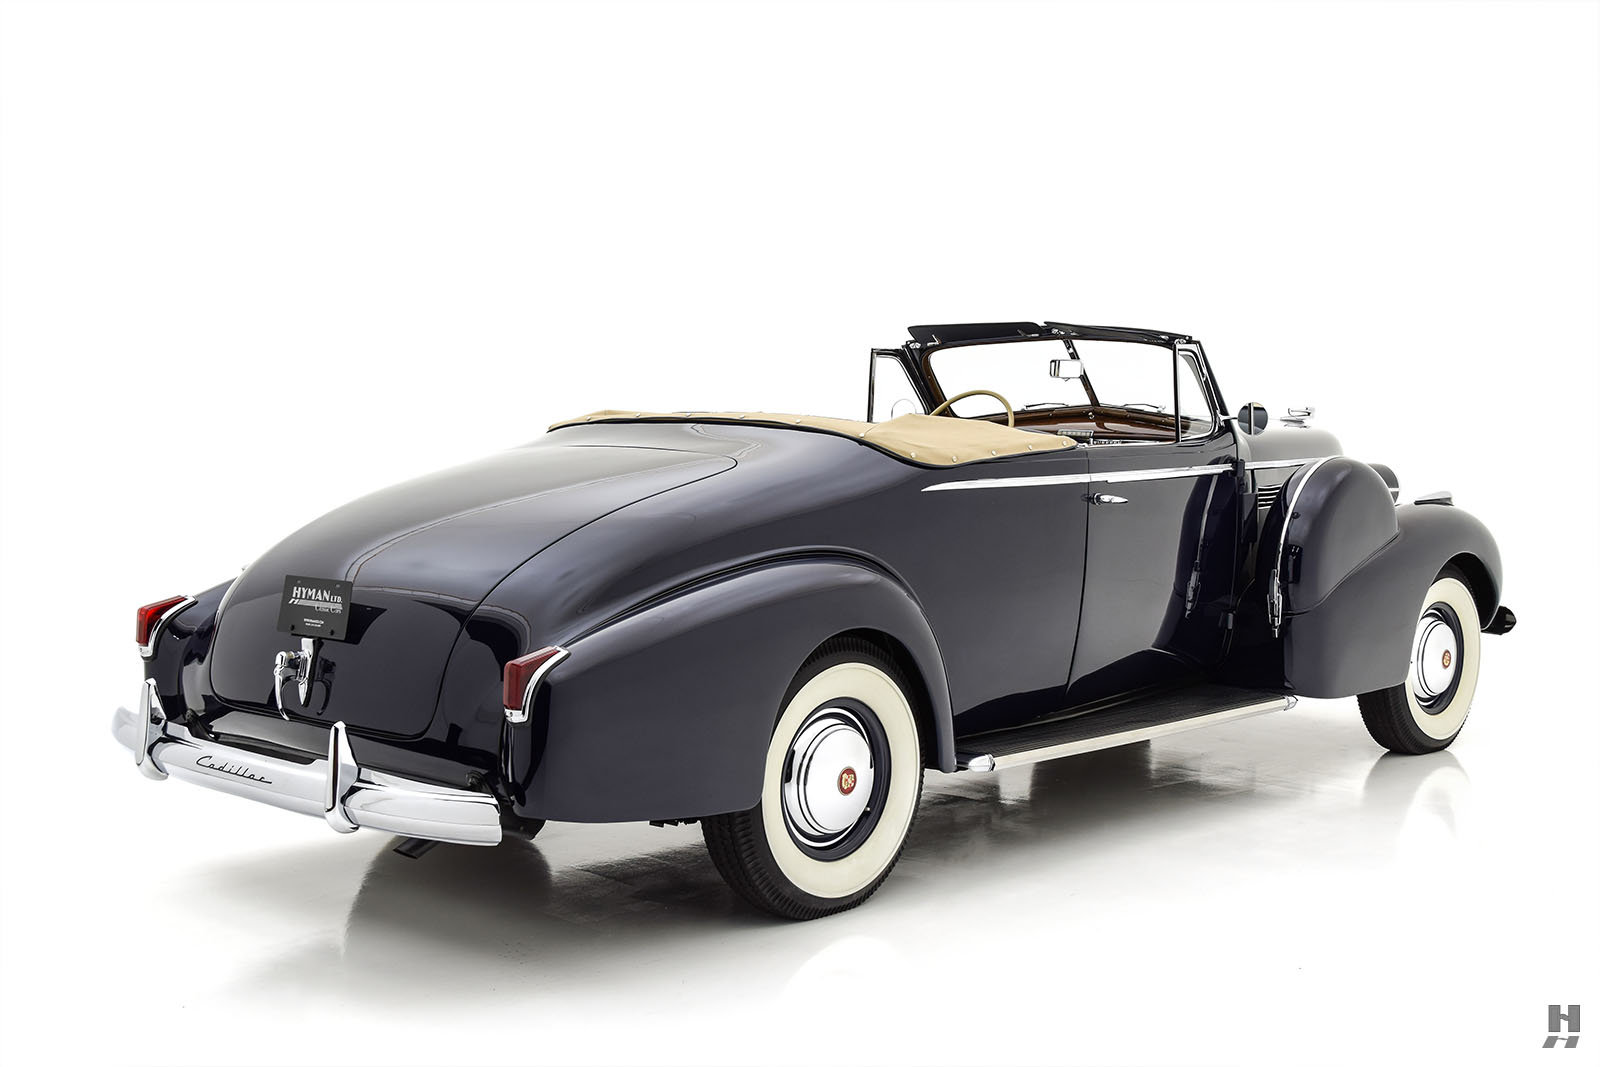 1940 CADILLAC SERIES 75 CONVERTIBLE COUPE For Sale (picture 5 of 6)